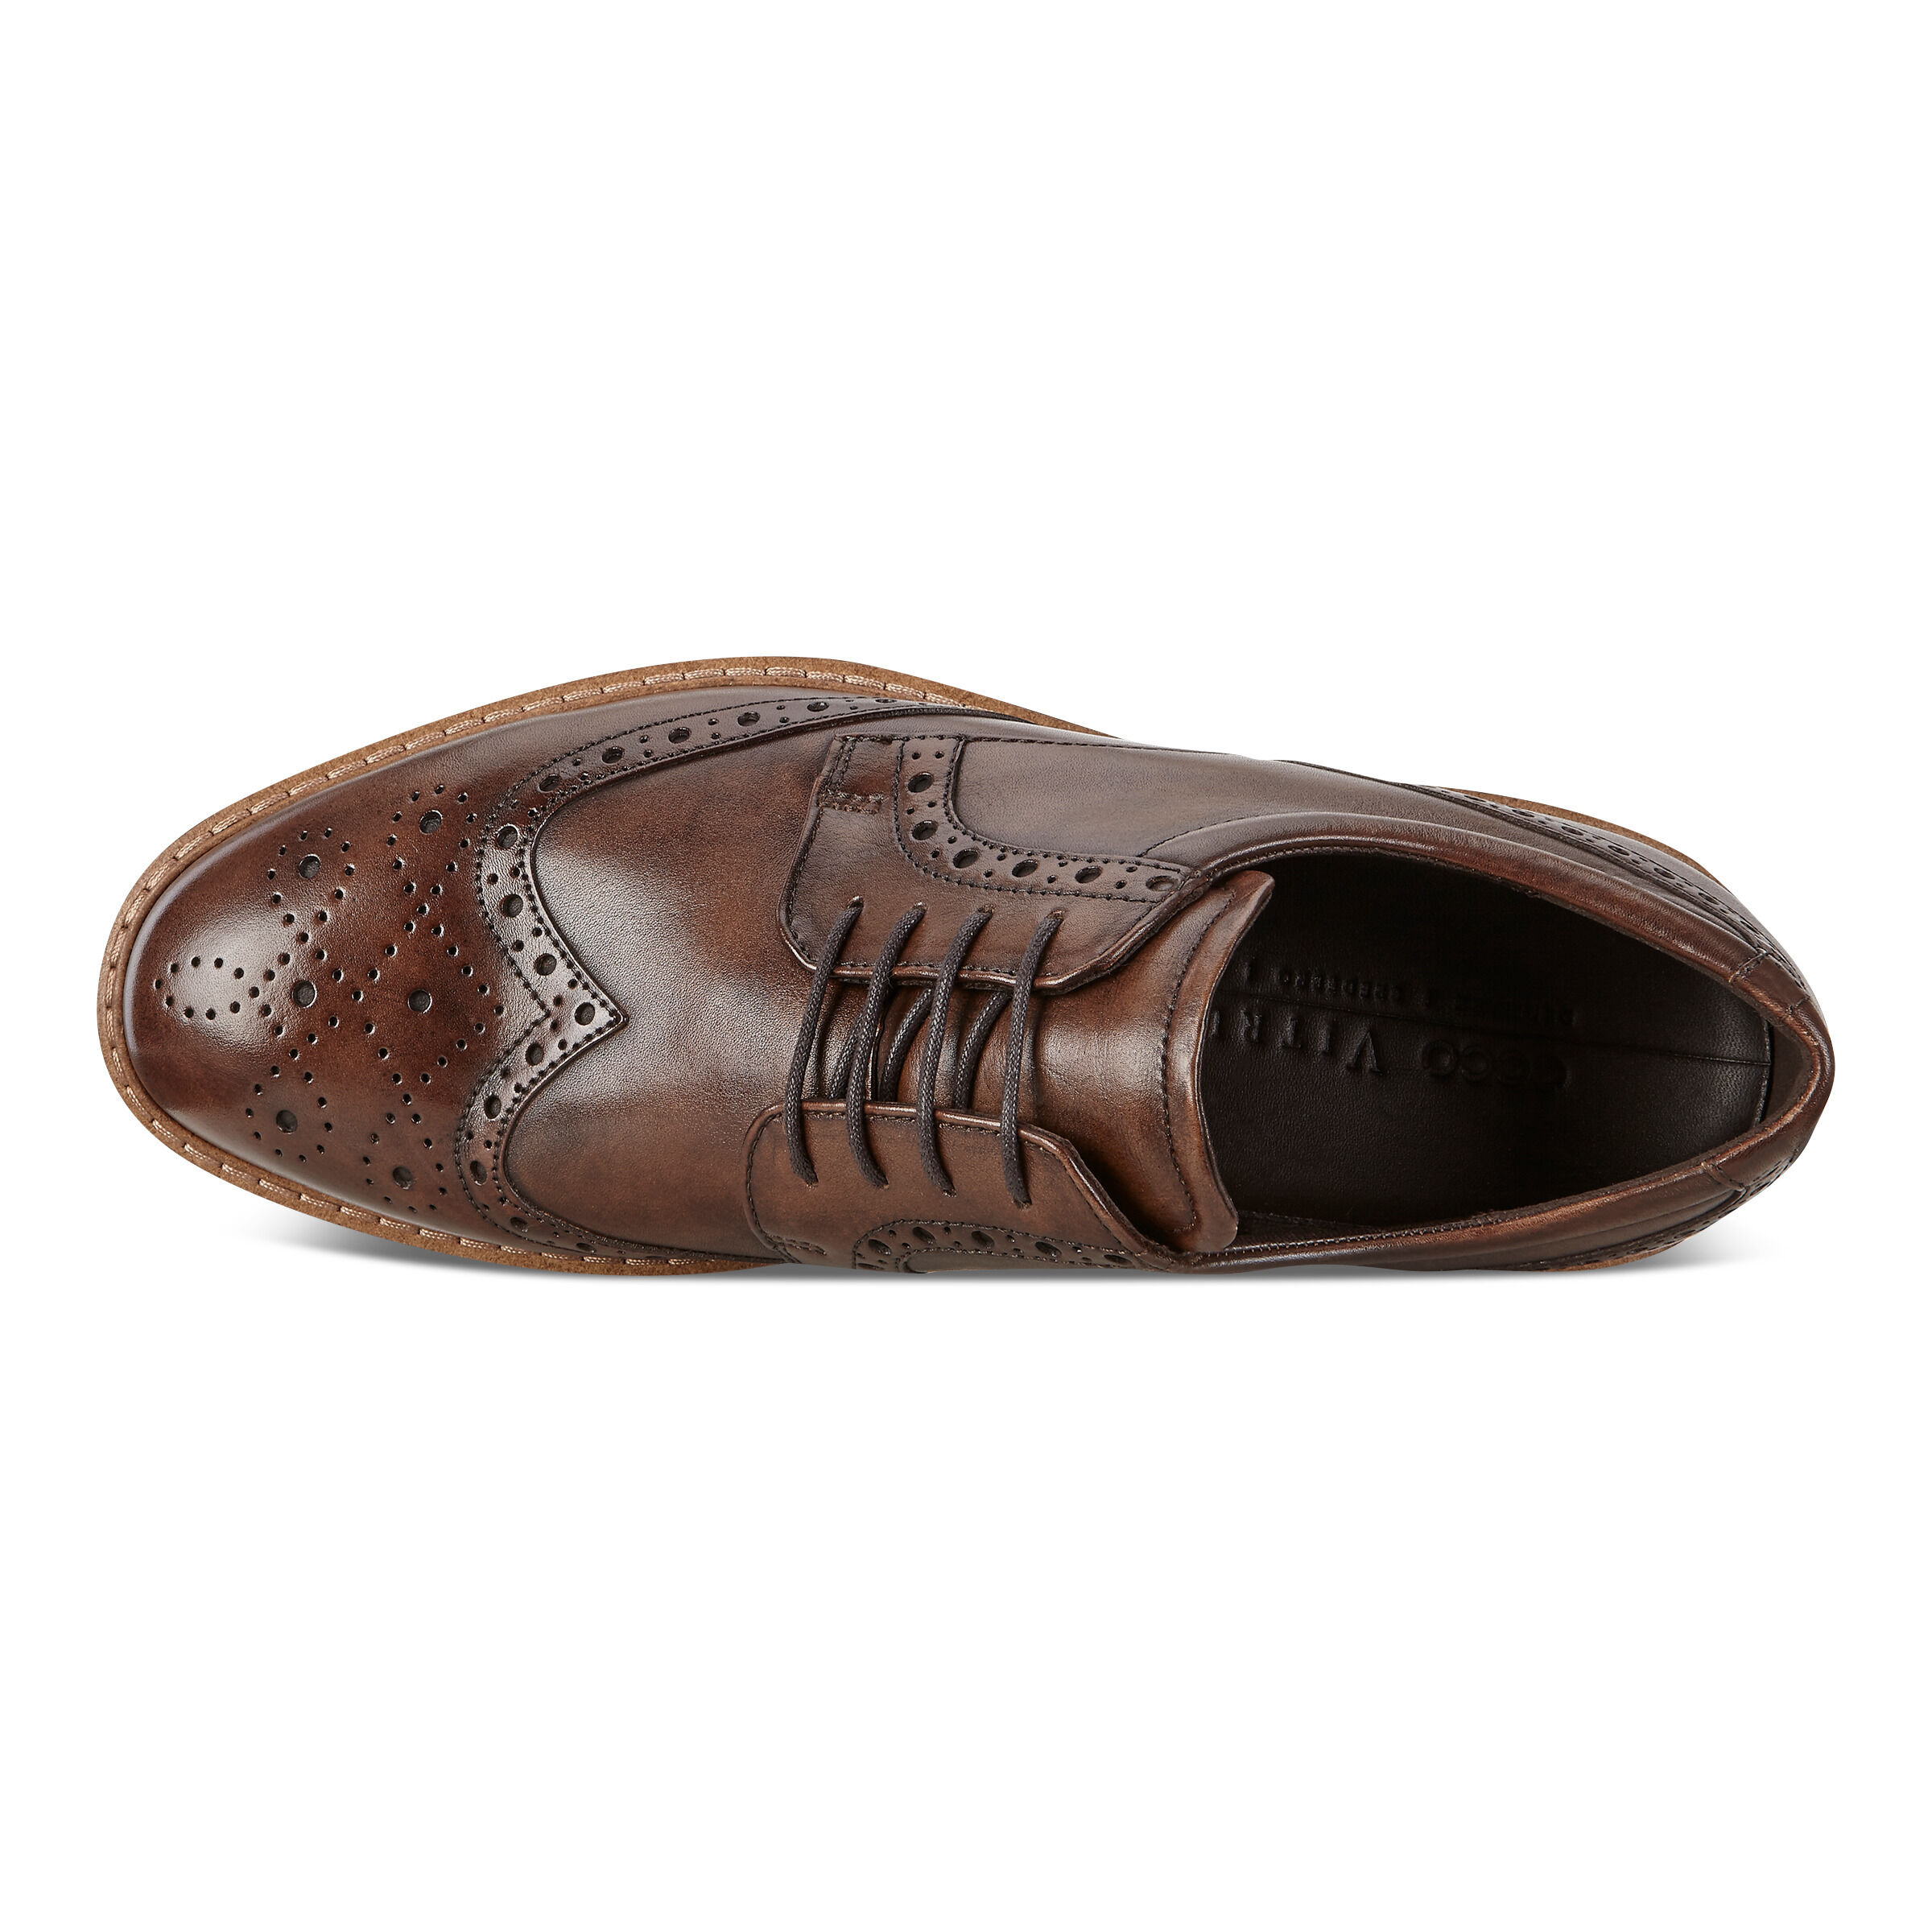 ECCO Men's Vitrus I Wing Tip Tie | Formal Shoes | ECCO? Shoes